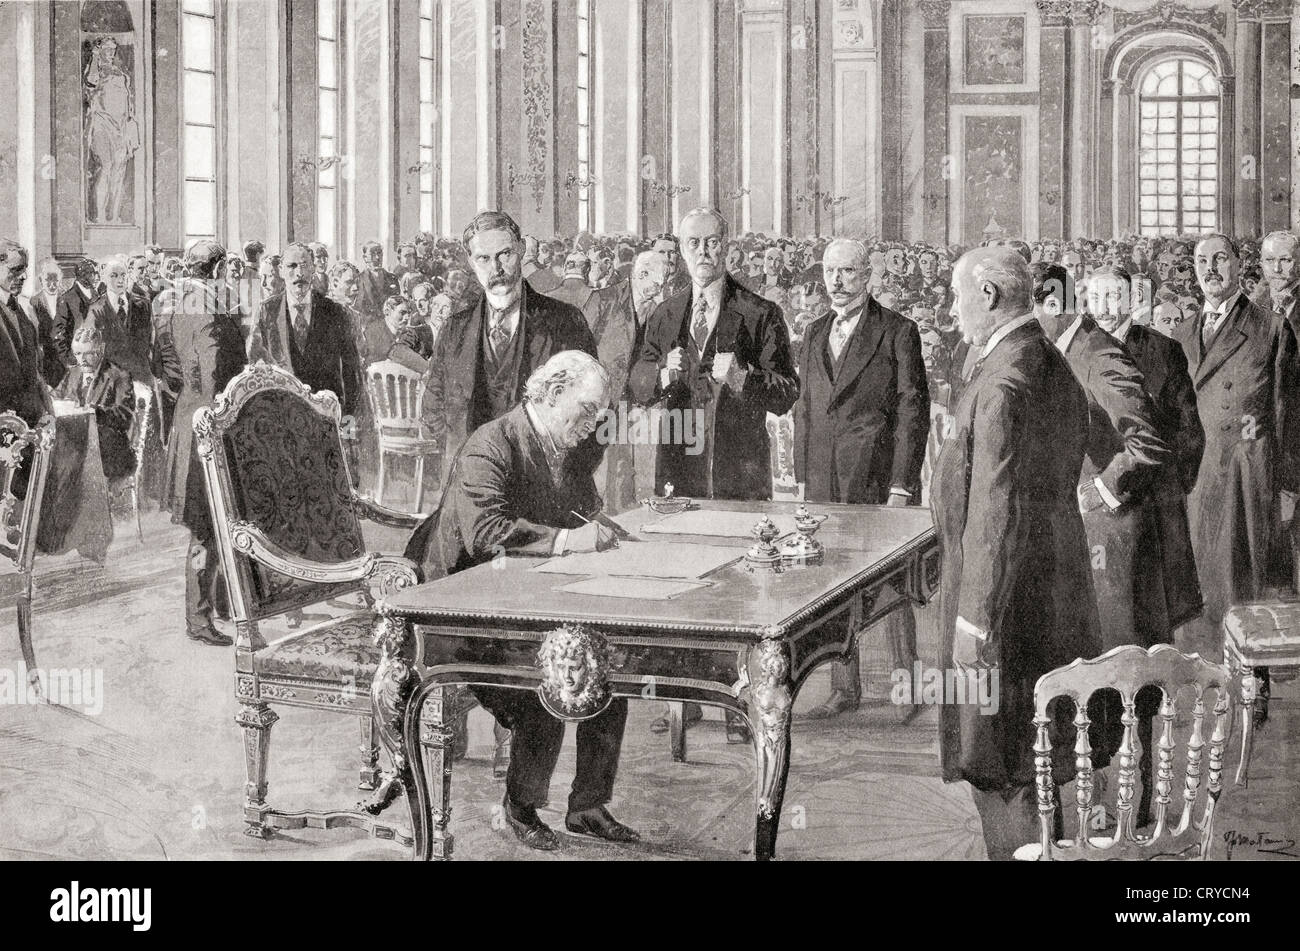 Mr. Lloyd George signs the Peace Treaty with Germany, June 28th, 1919, in the Hall of Mirrors, Palace of Versailles, Stock Photo